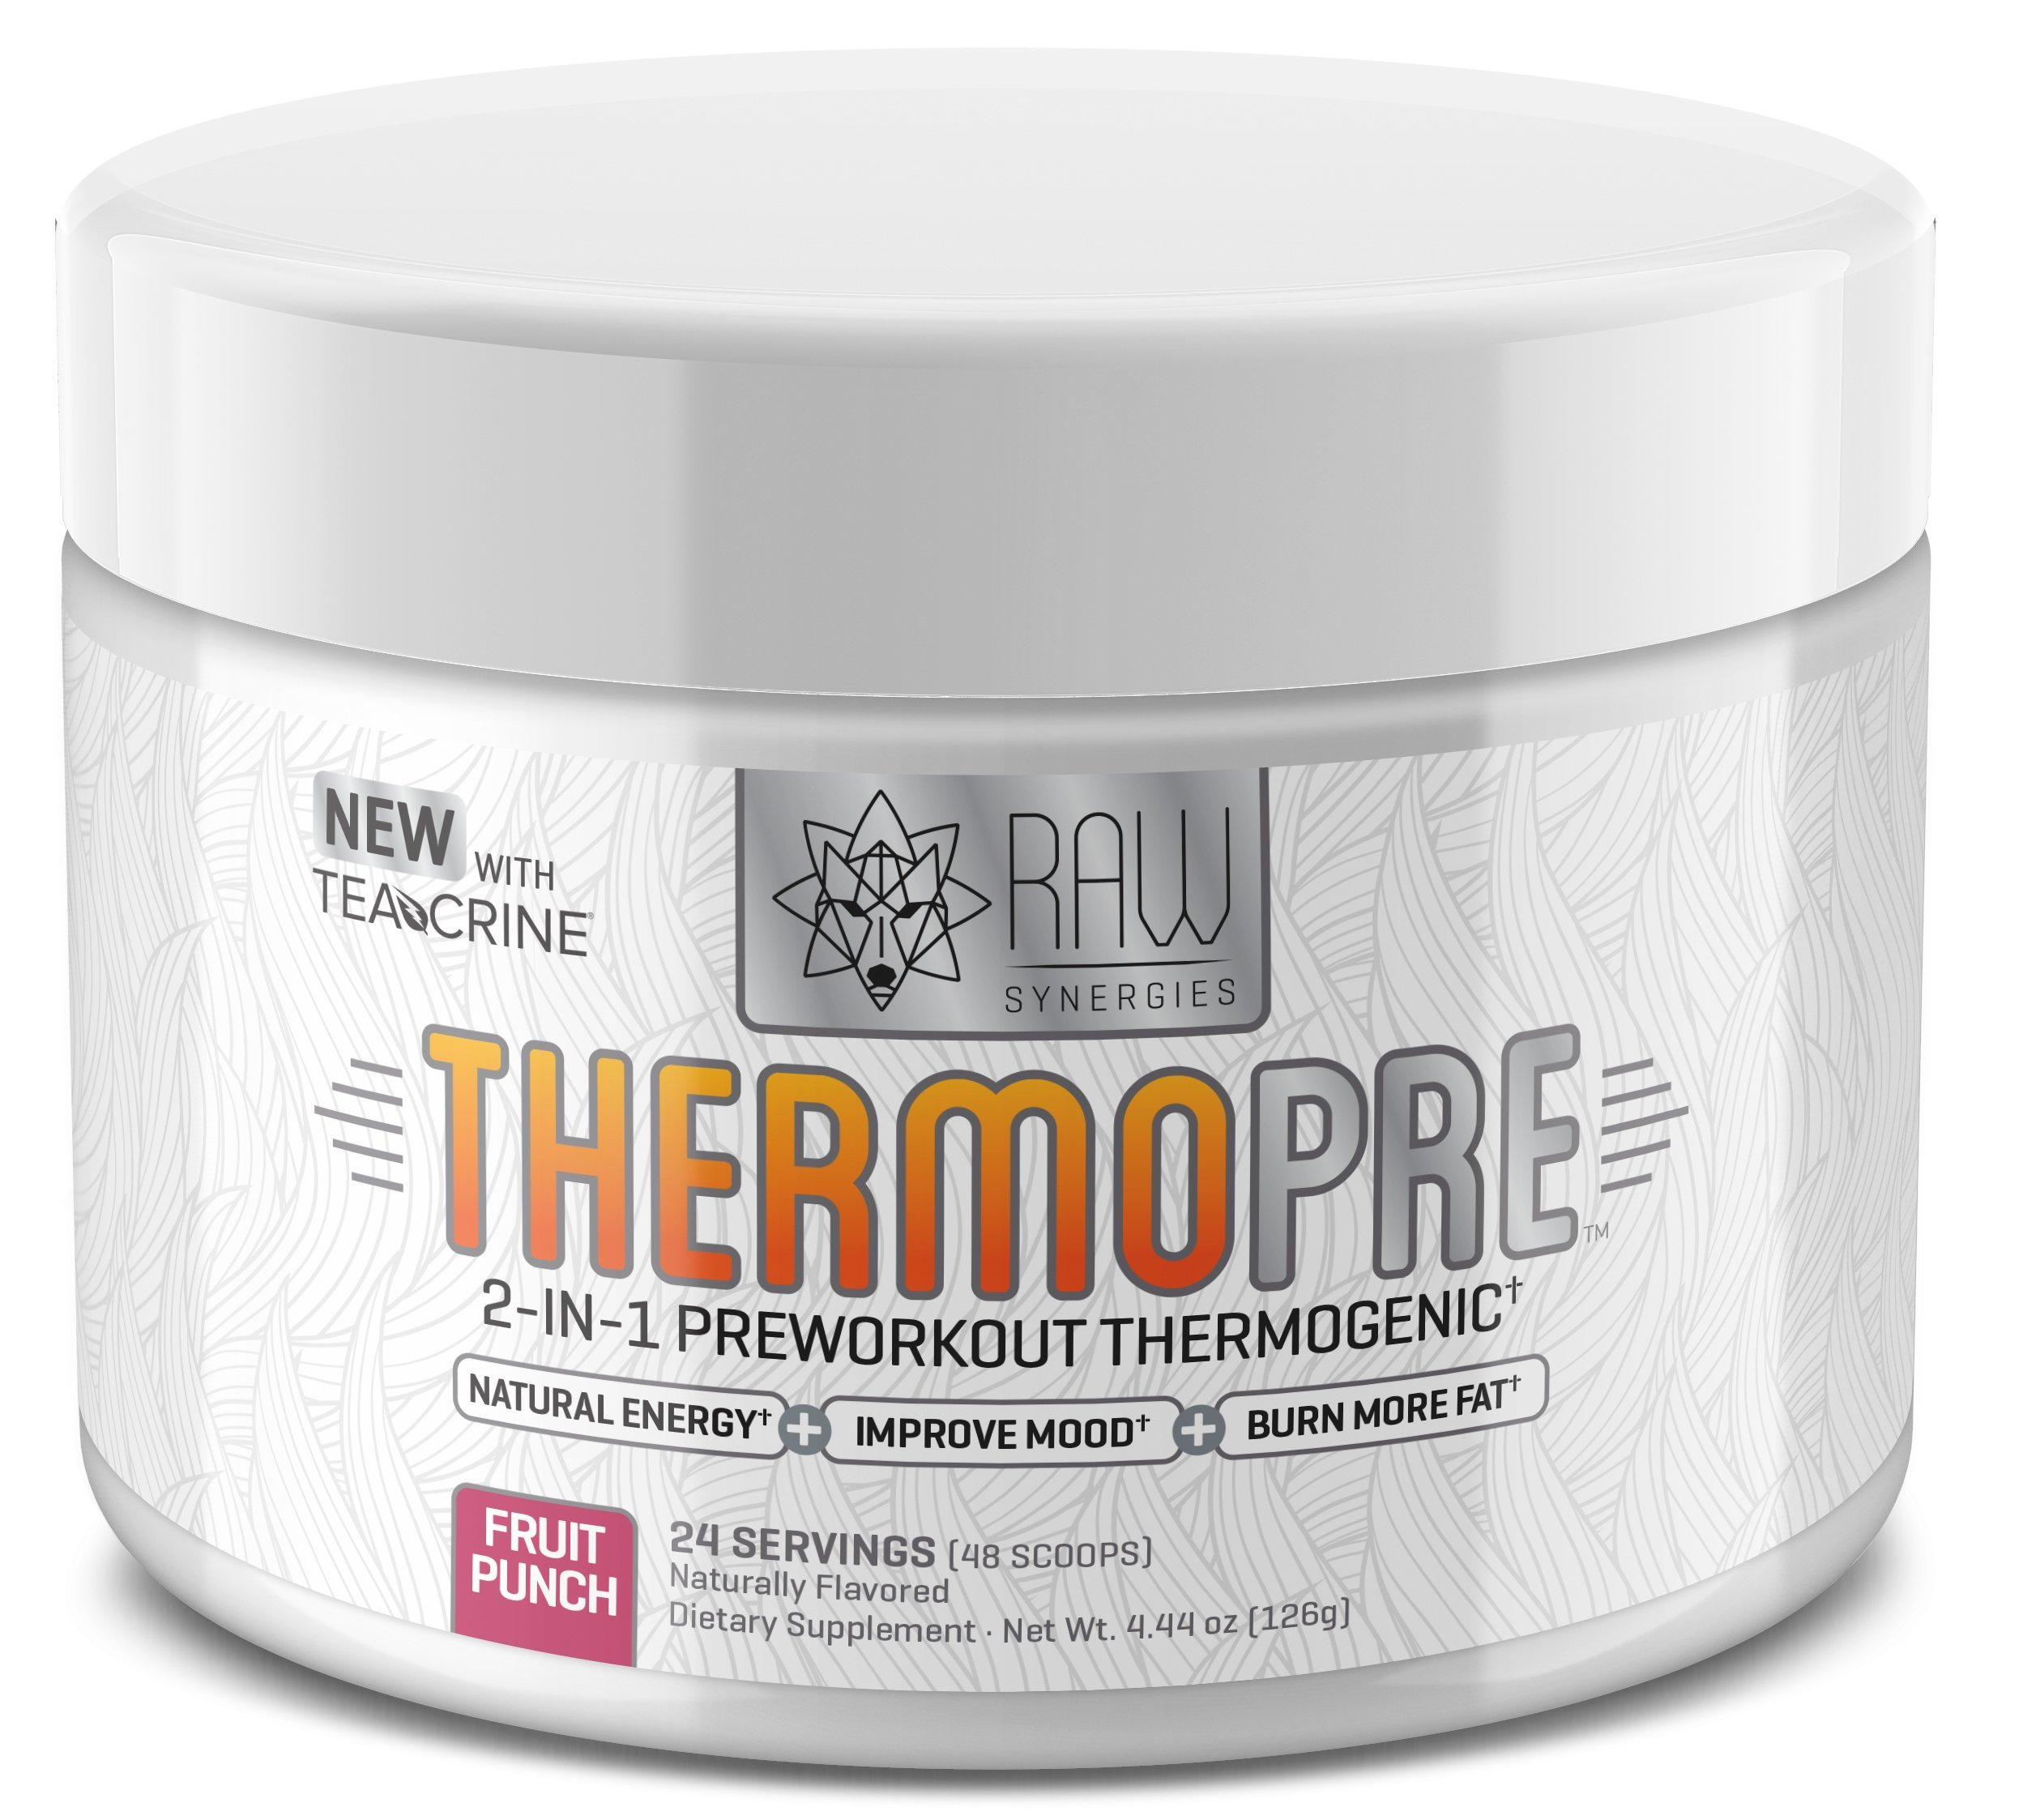 RAW Synergies Pre Workout Thermogenic Fat Burner Powder for Women and Men, All Natural Energy & Weight Loss Supplement - Focus & Metabolism Booster Drink - No Artificial Sweeteners, Fruit Punch, 24SV by RAW Synergies